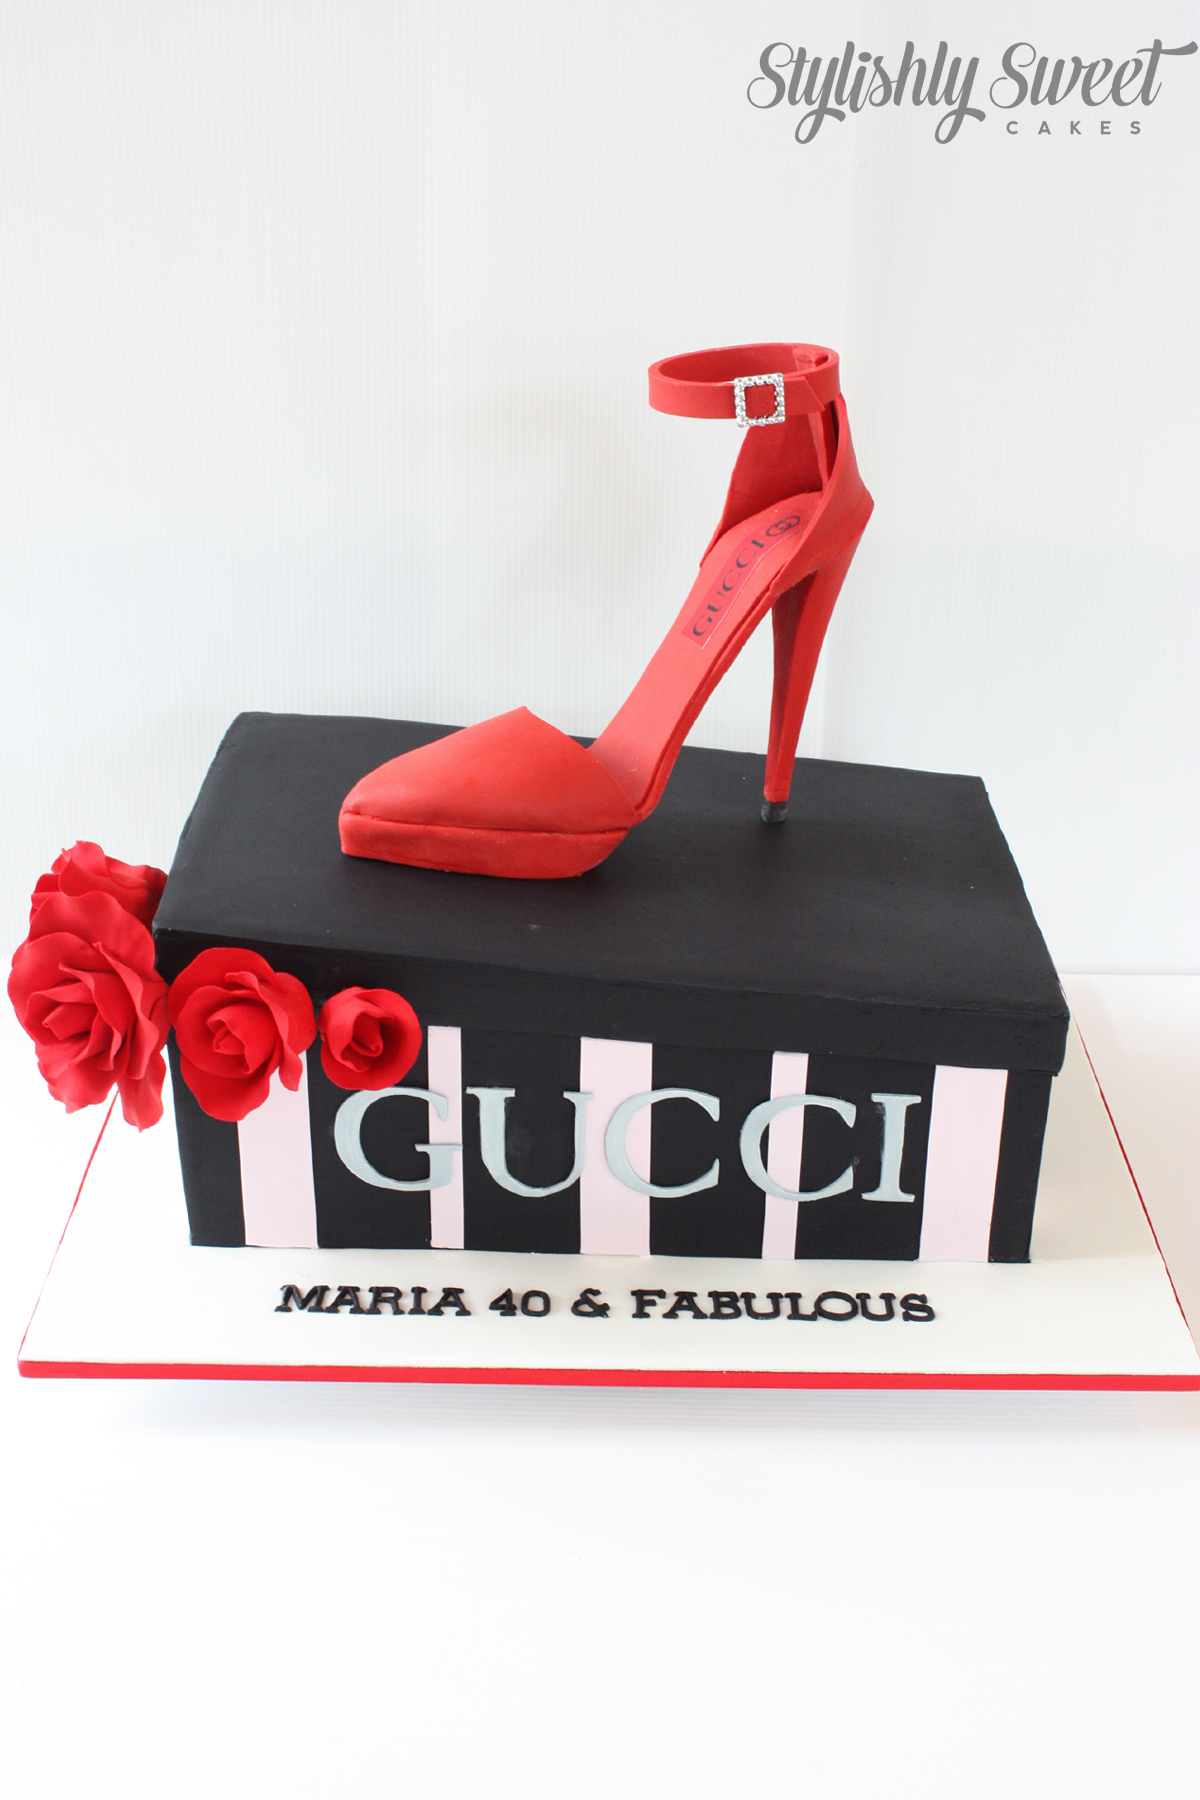 Gucci_stelletto_cake_01 copy